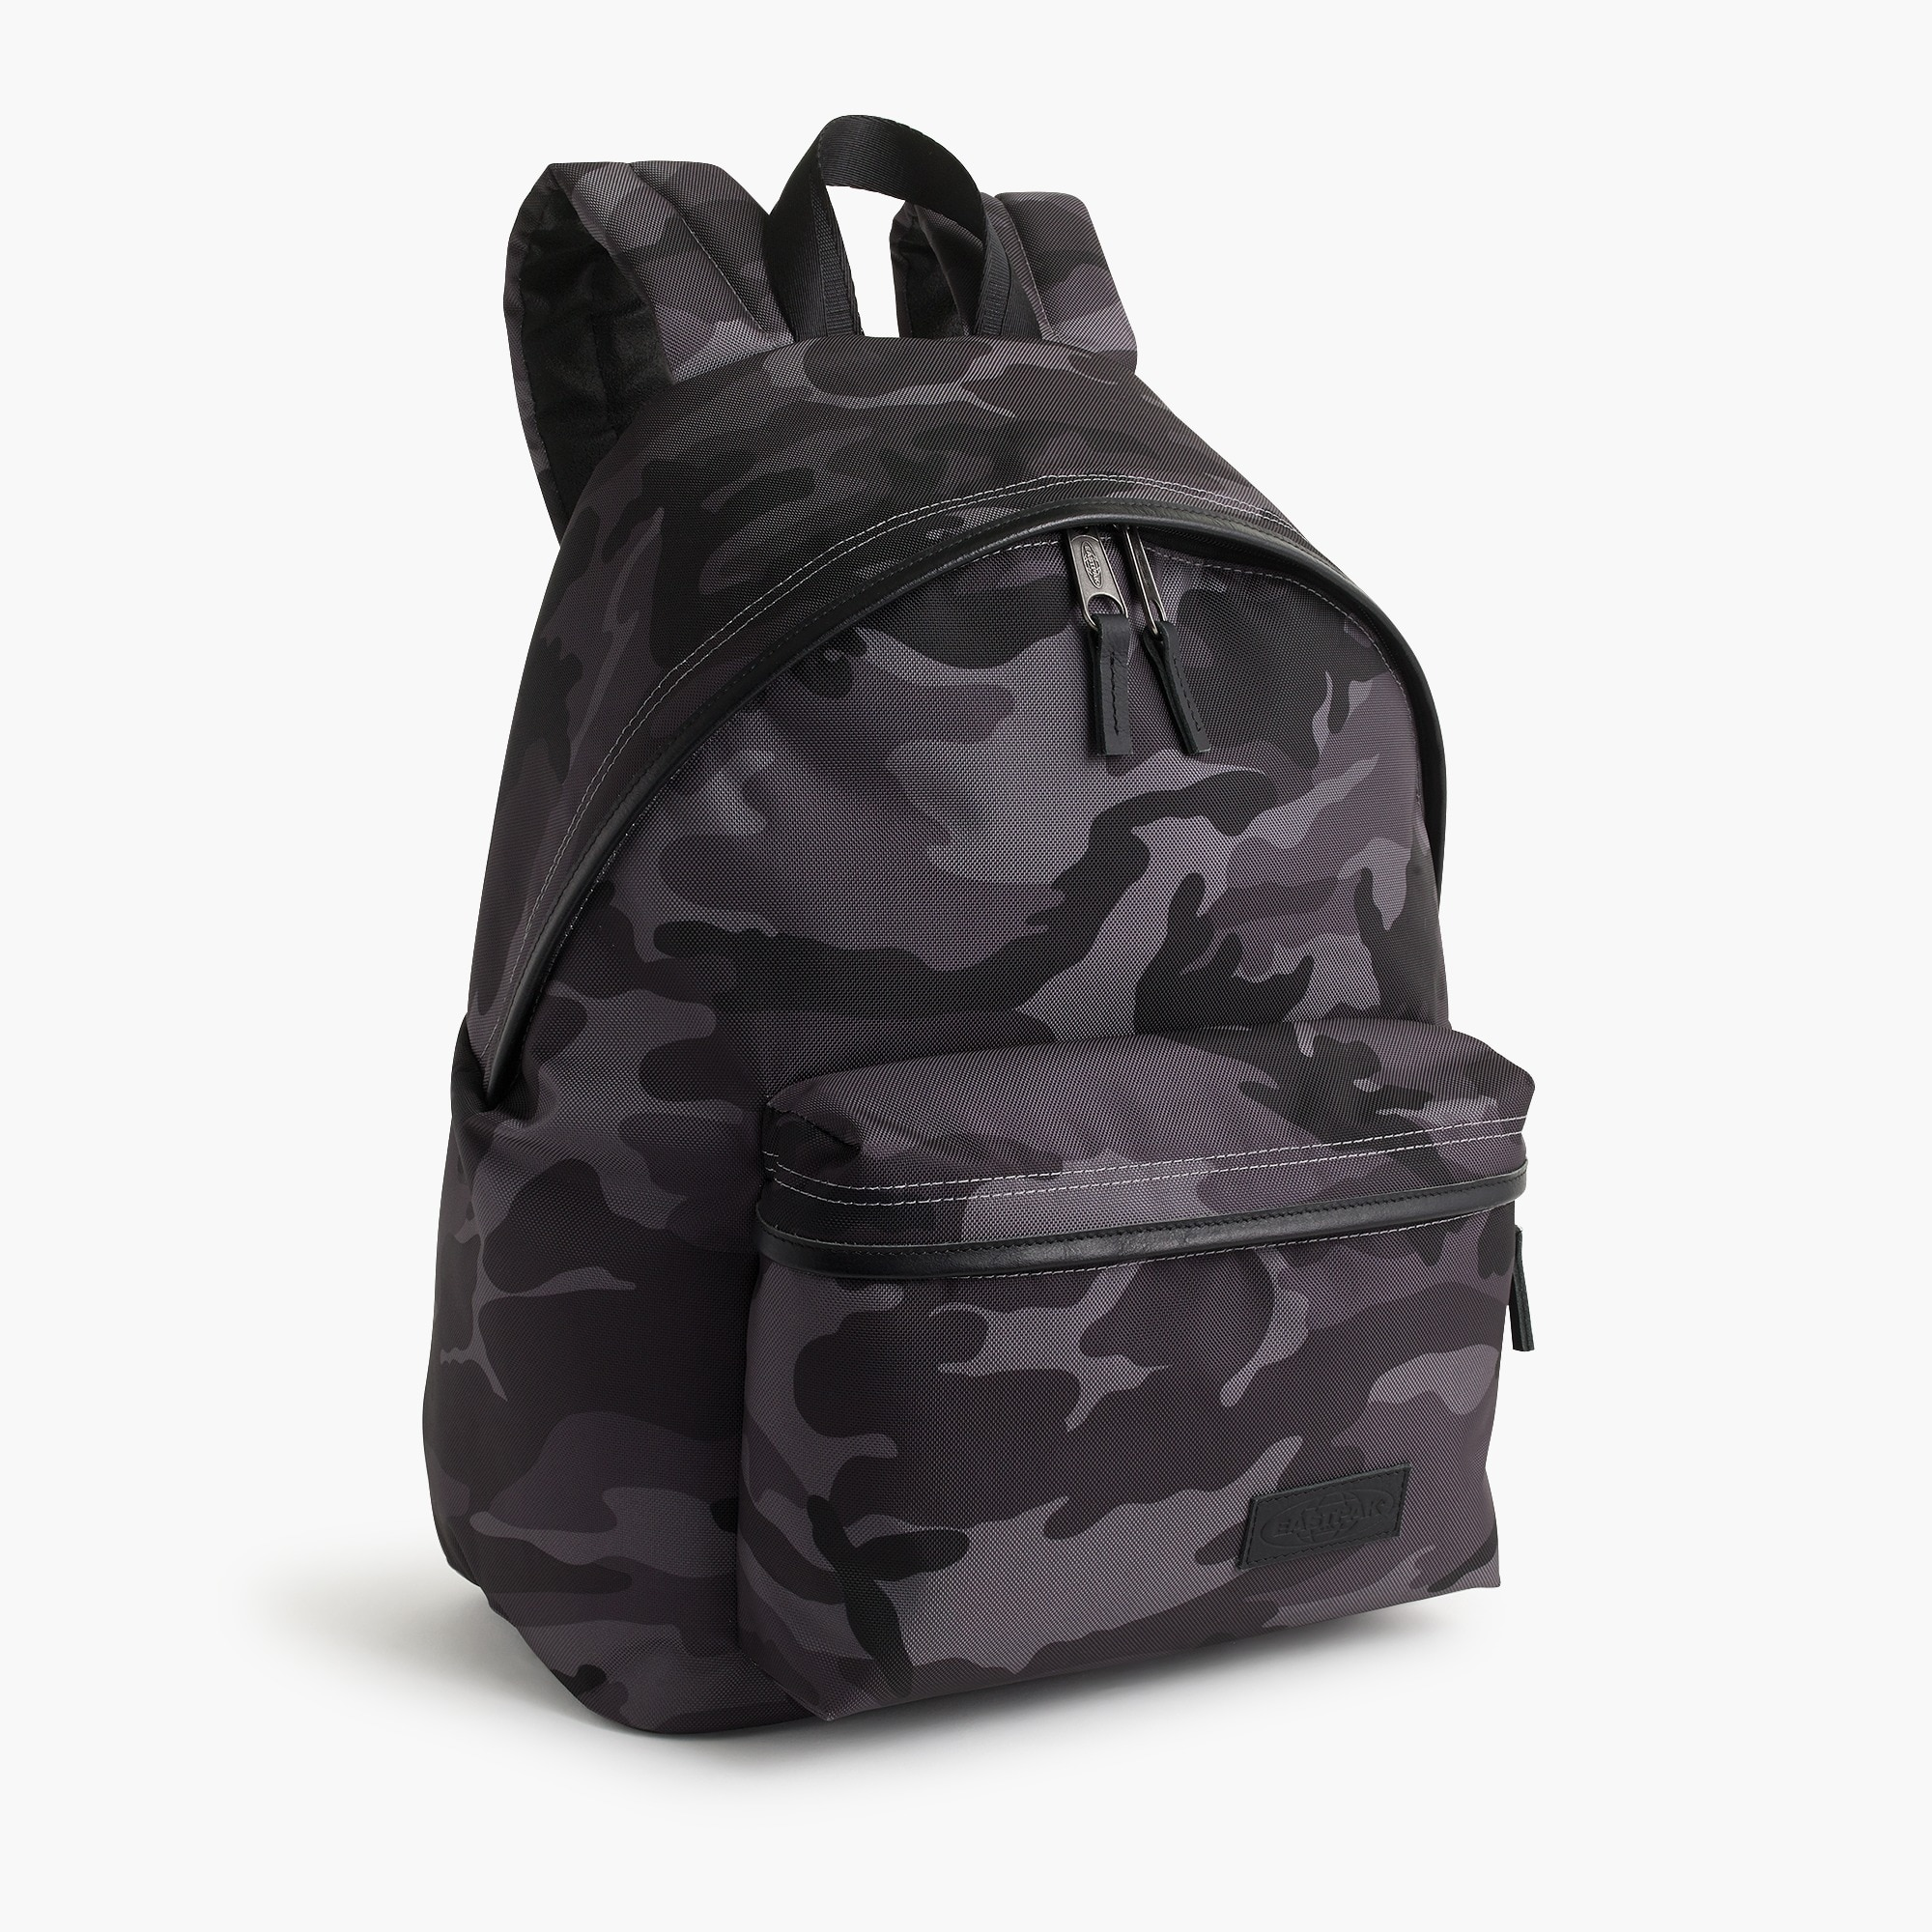 Eastpak® Padded Pak'r® backpack in constructed camouflage